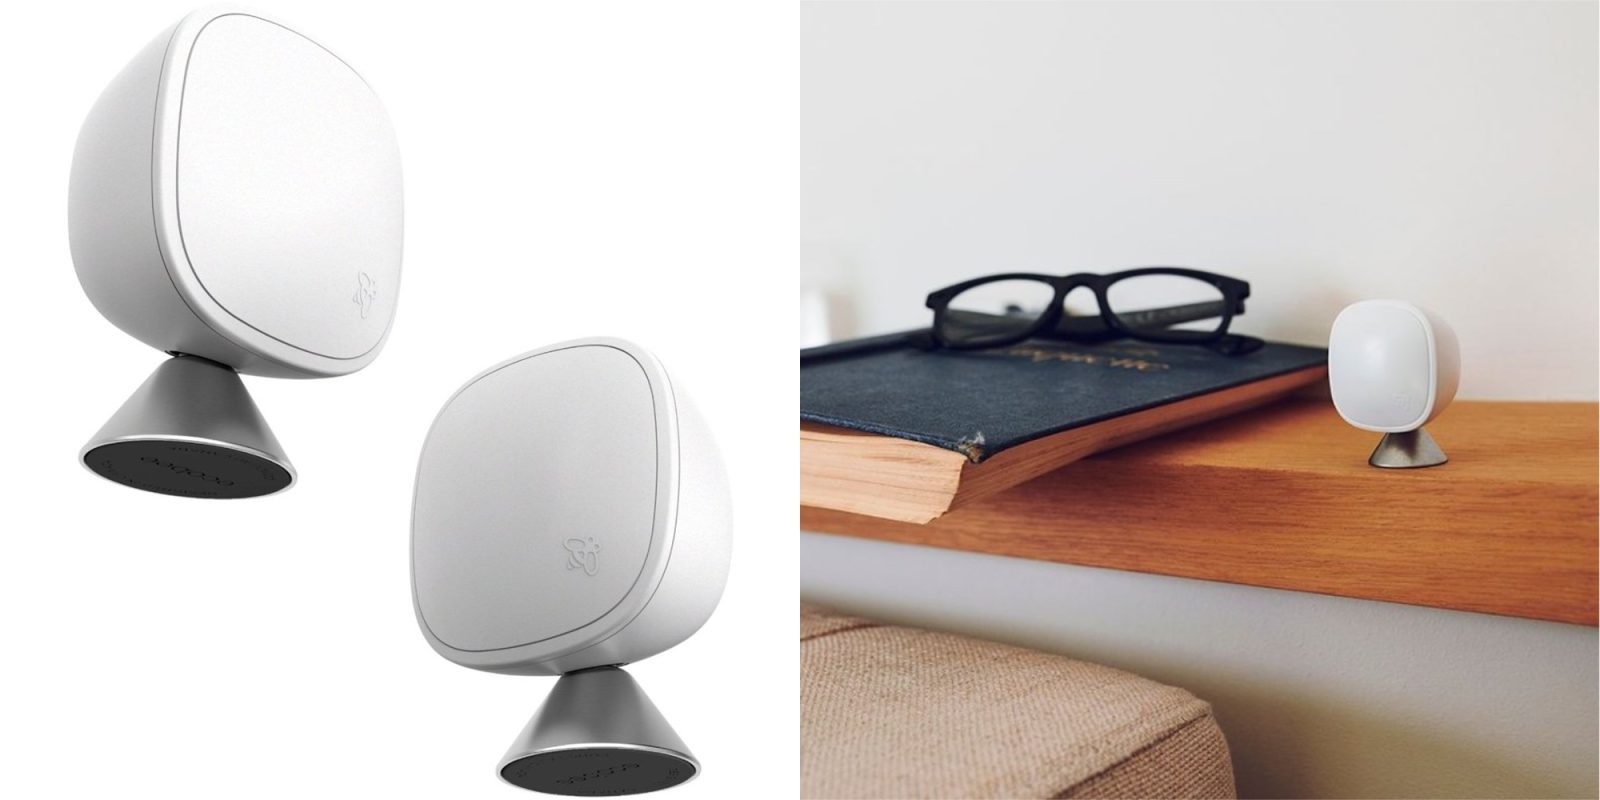 Take 24% off ecobee's new HomeKit-enabled SmartSensors at a low of $60